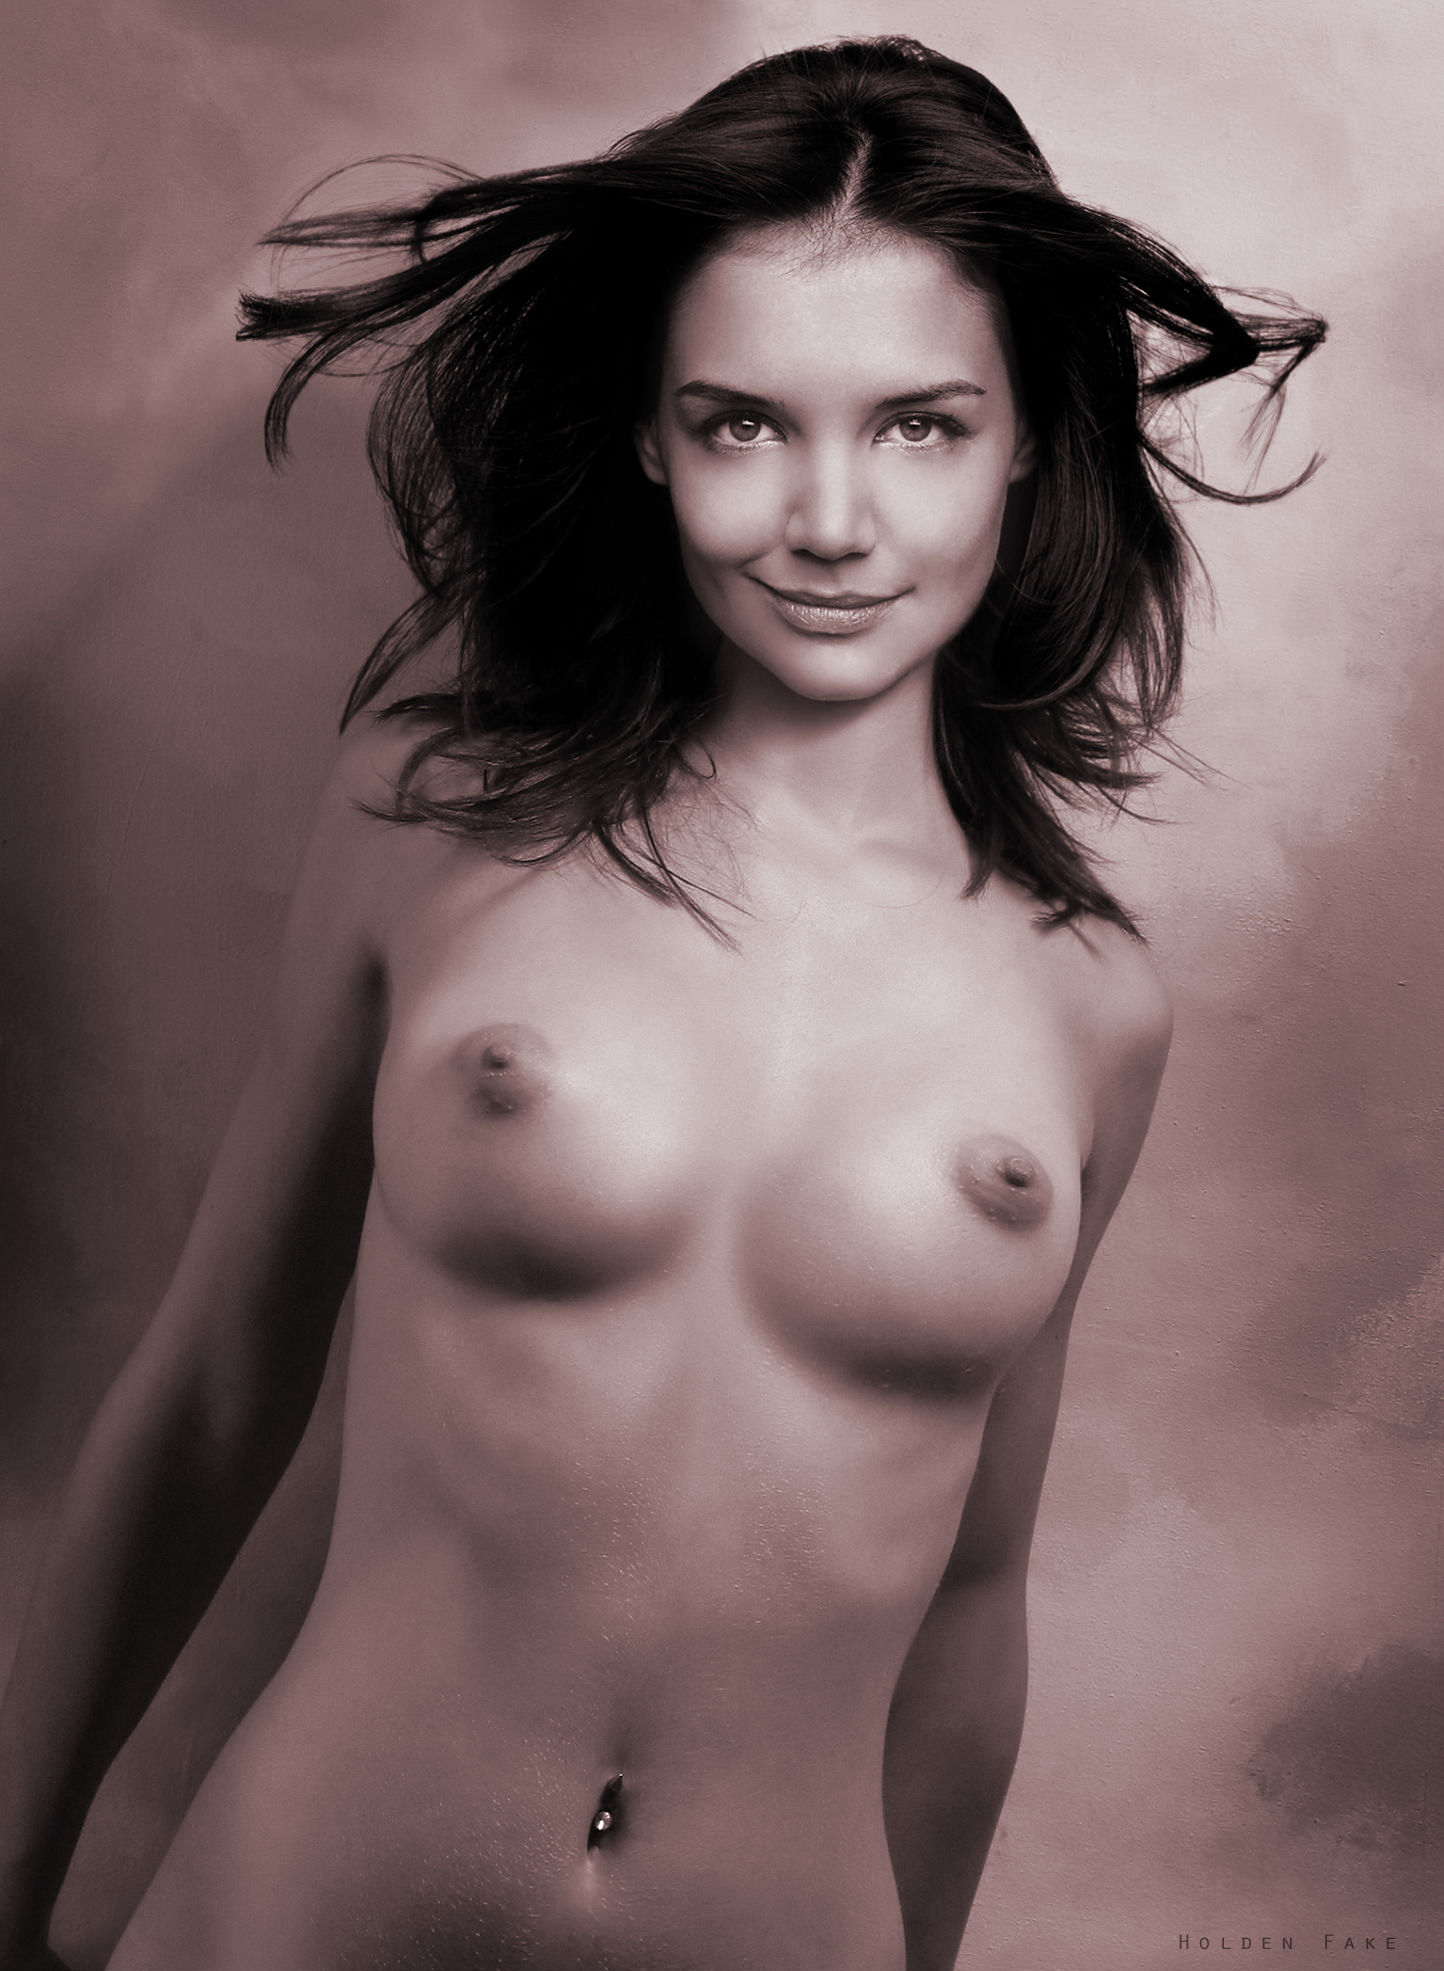 Free nude celebrity pictures katie holmes upskirt hot butt